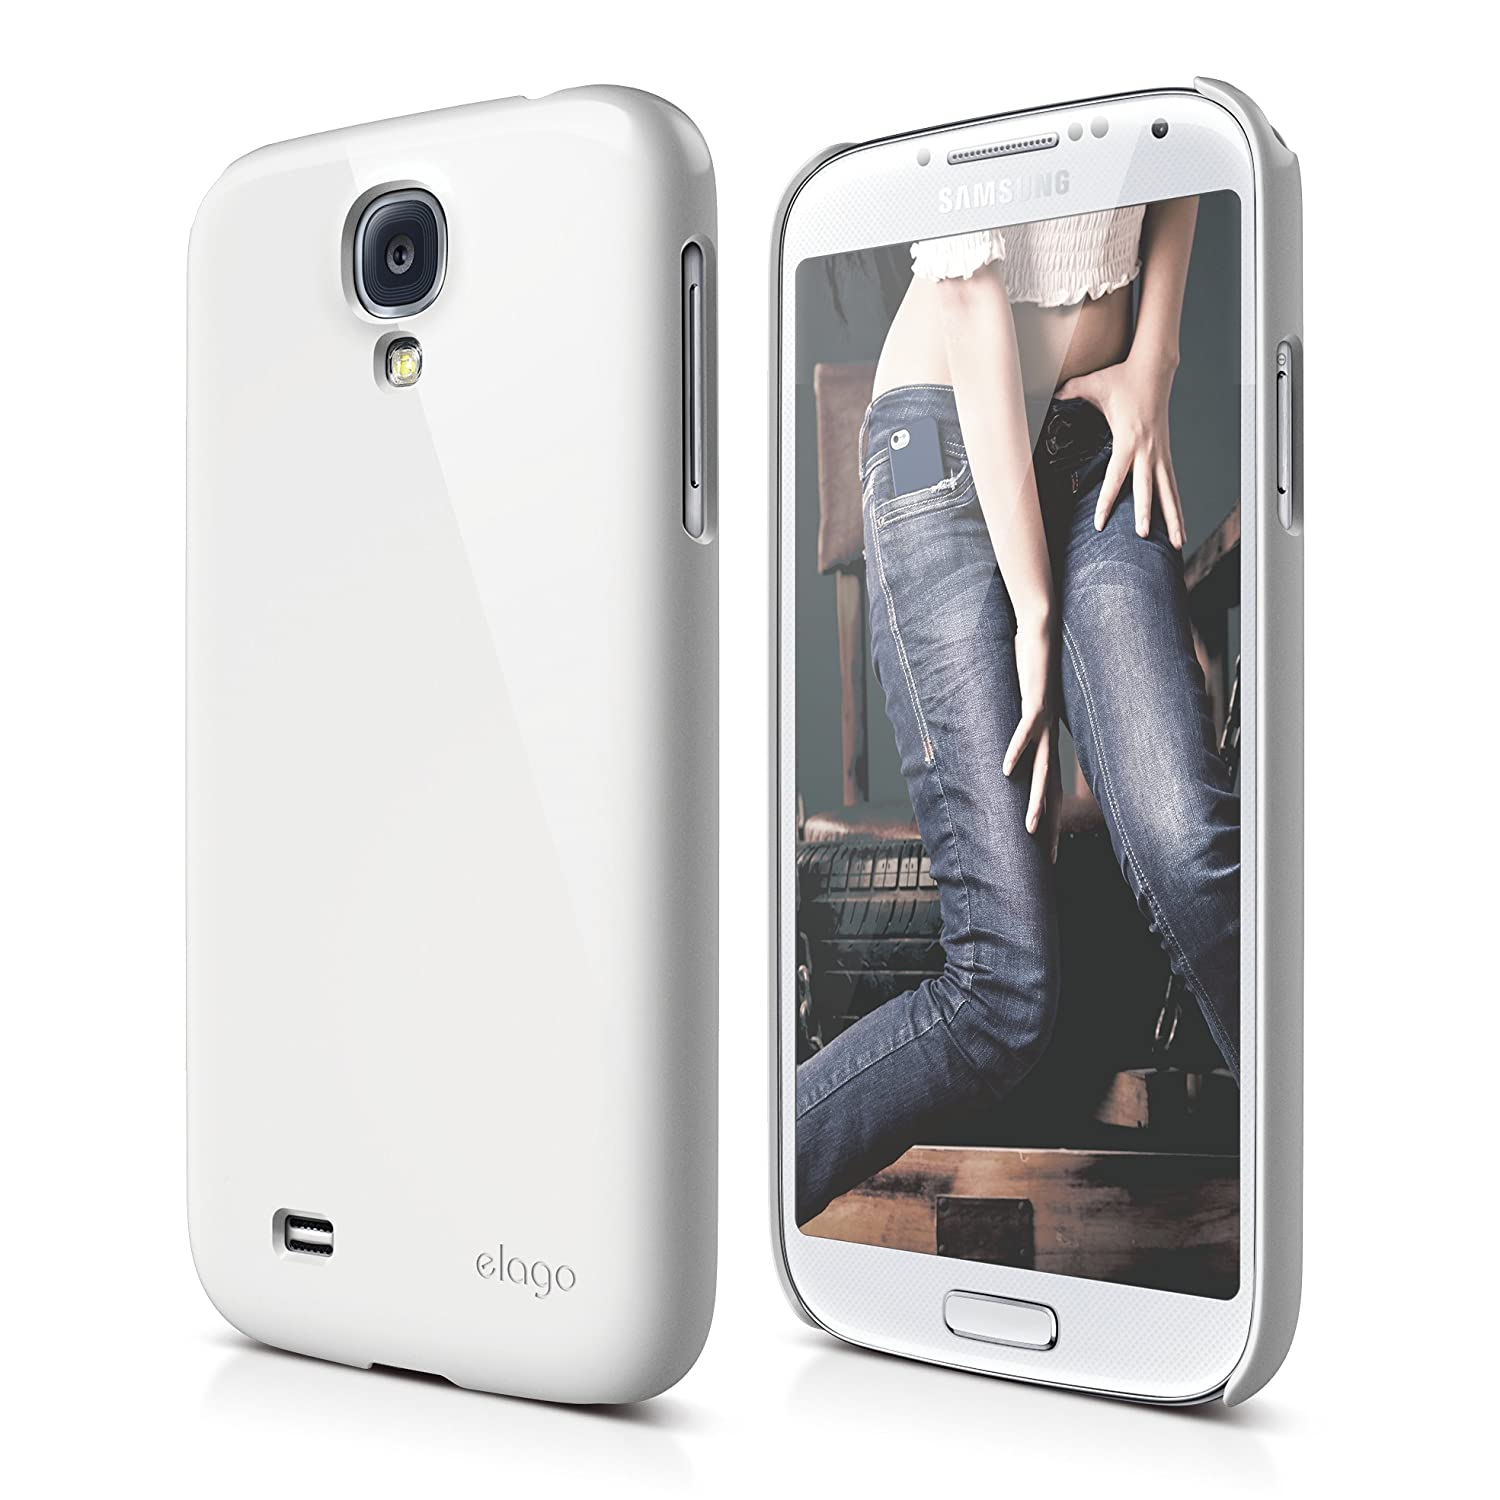 elago G7 Slim Fit Case for Galaxy S4 + HD Professional Extreme Clear film included - Full Retail Packaging (White)